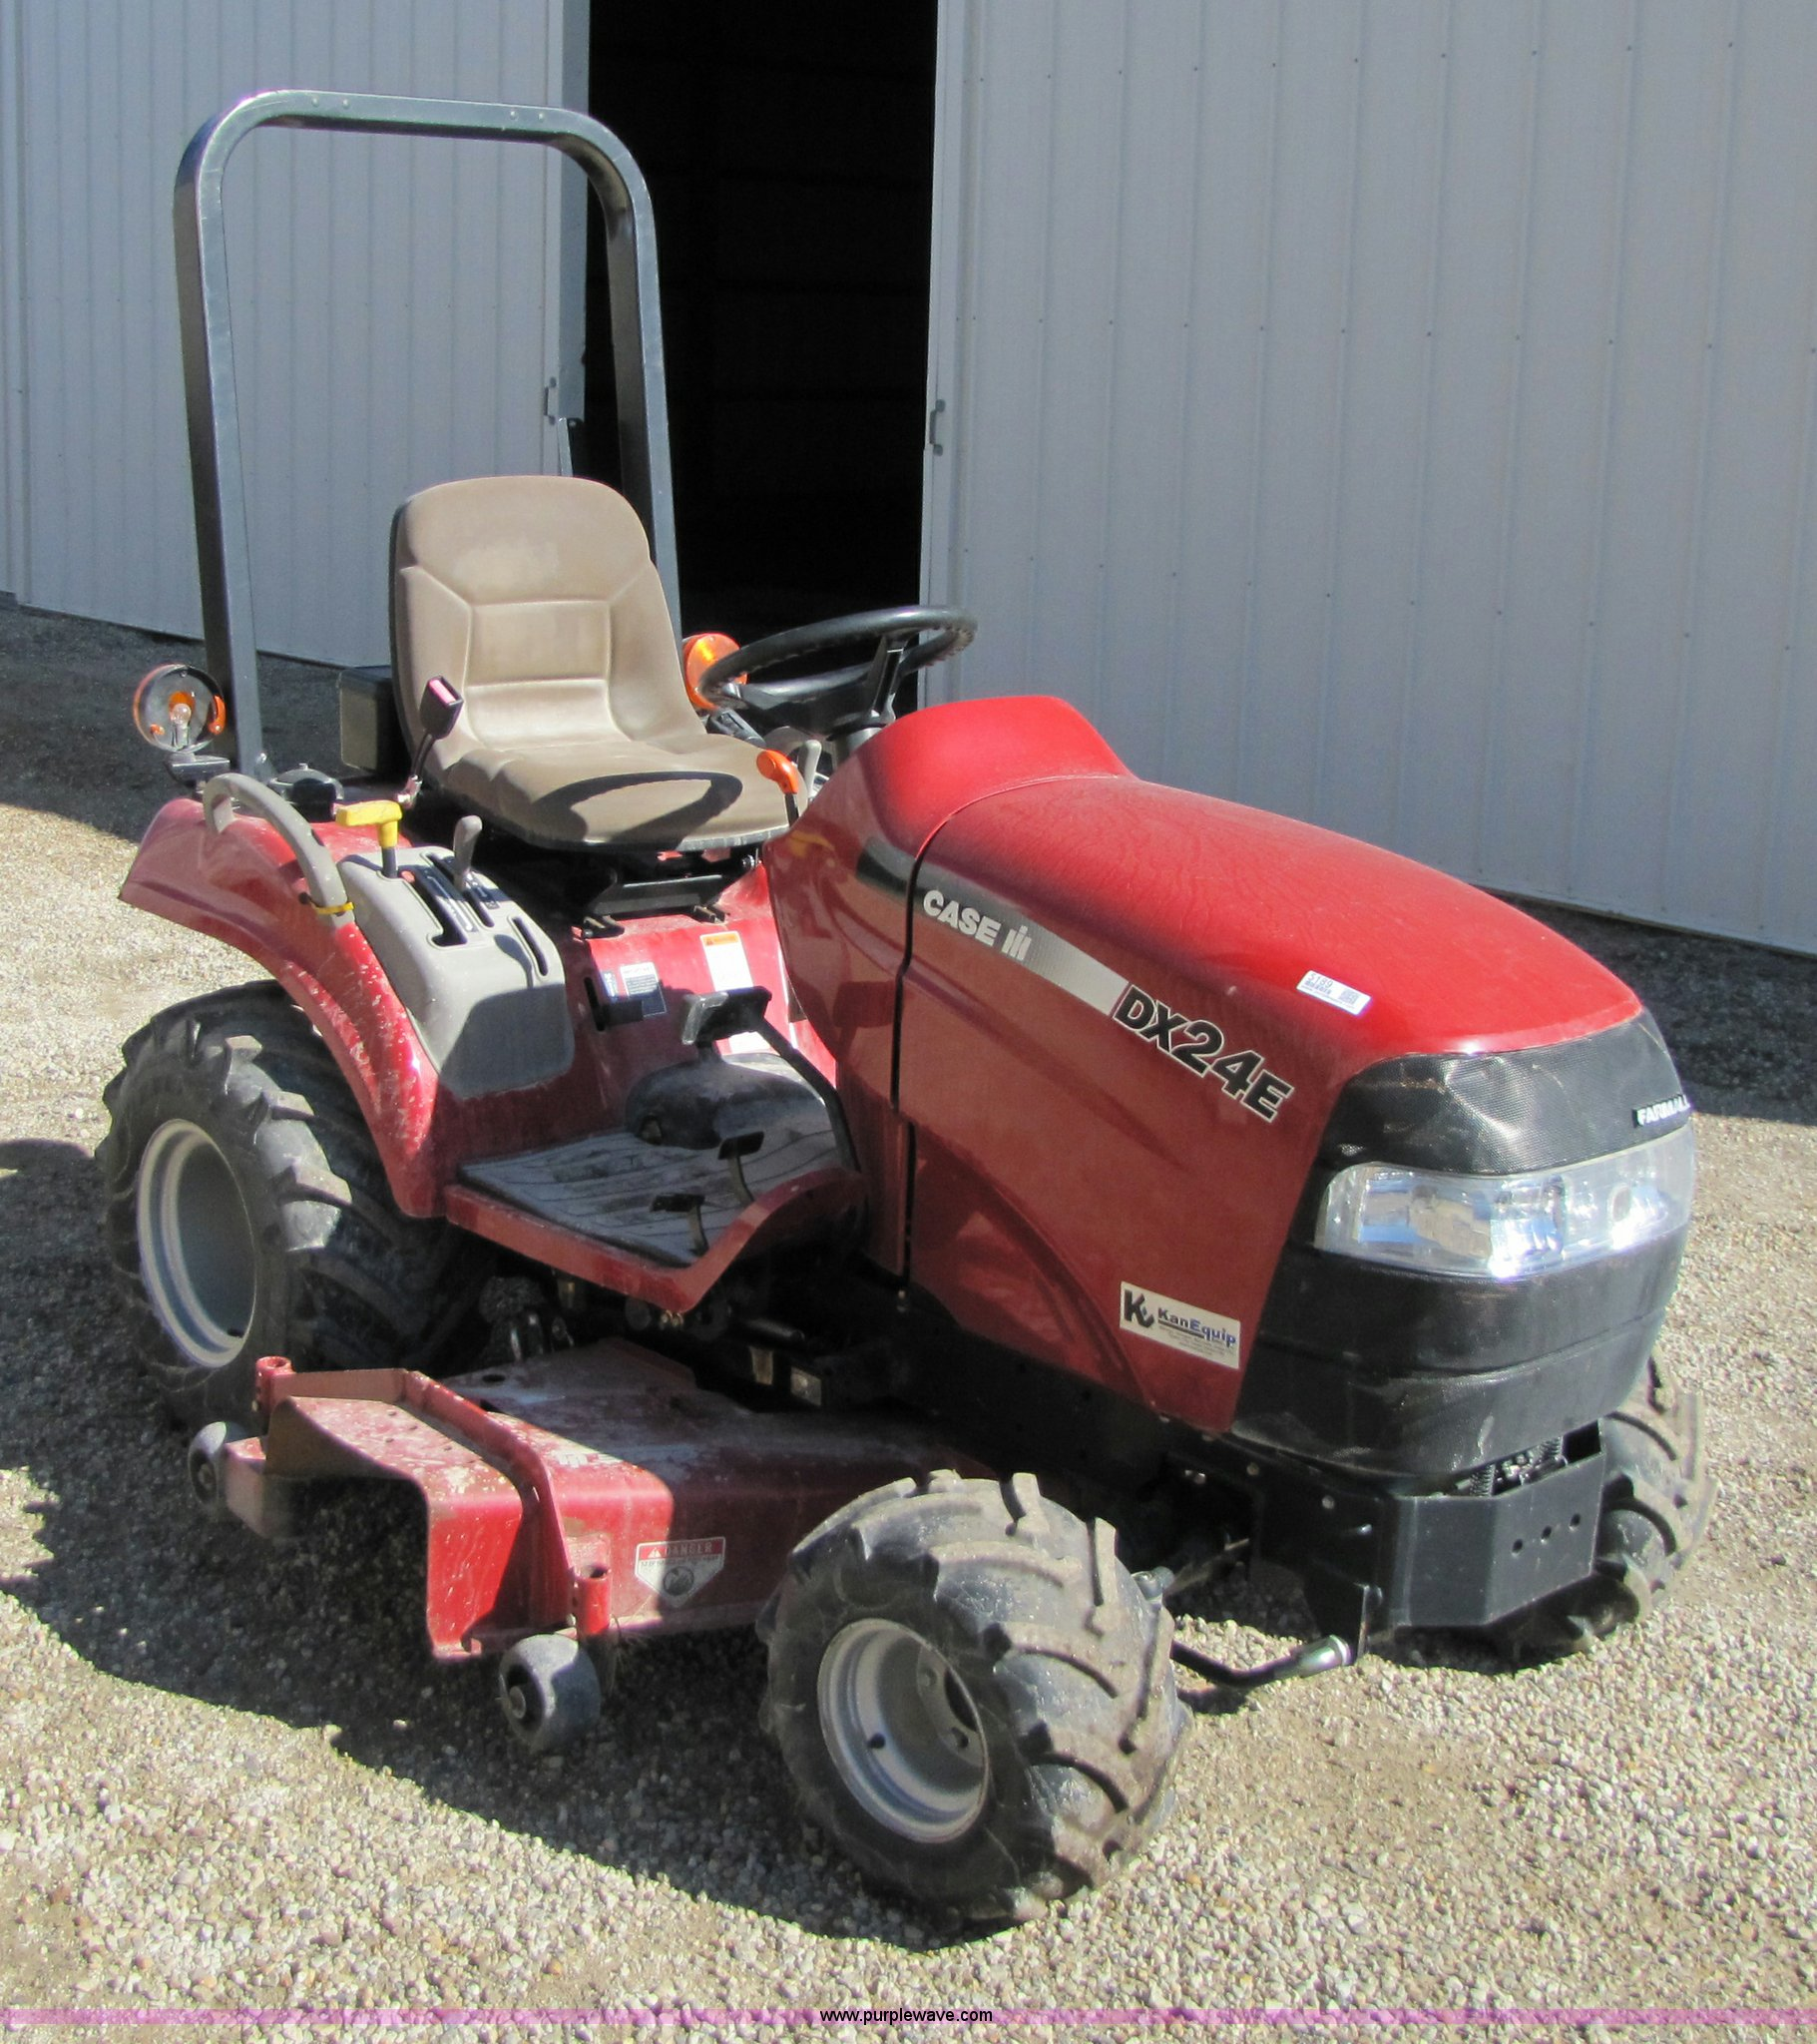 Ih Garden Tractors : Case ih dx garden tractor with mower deck item